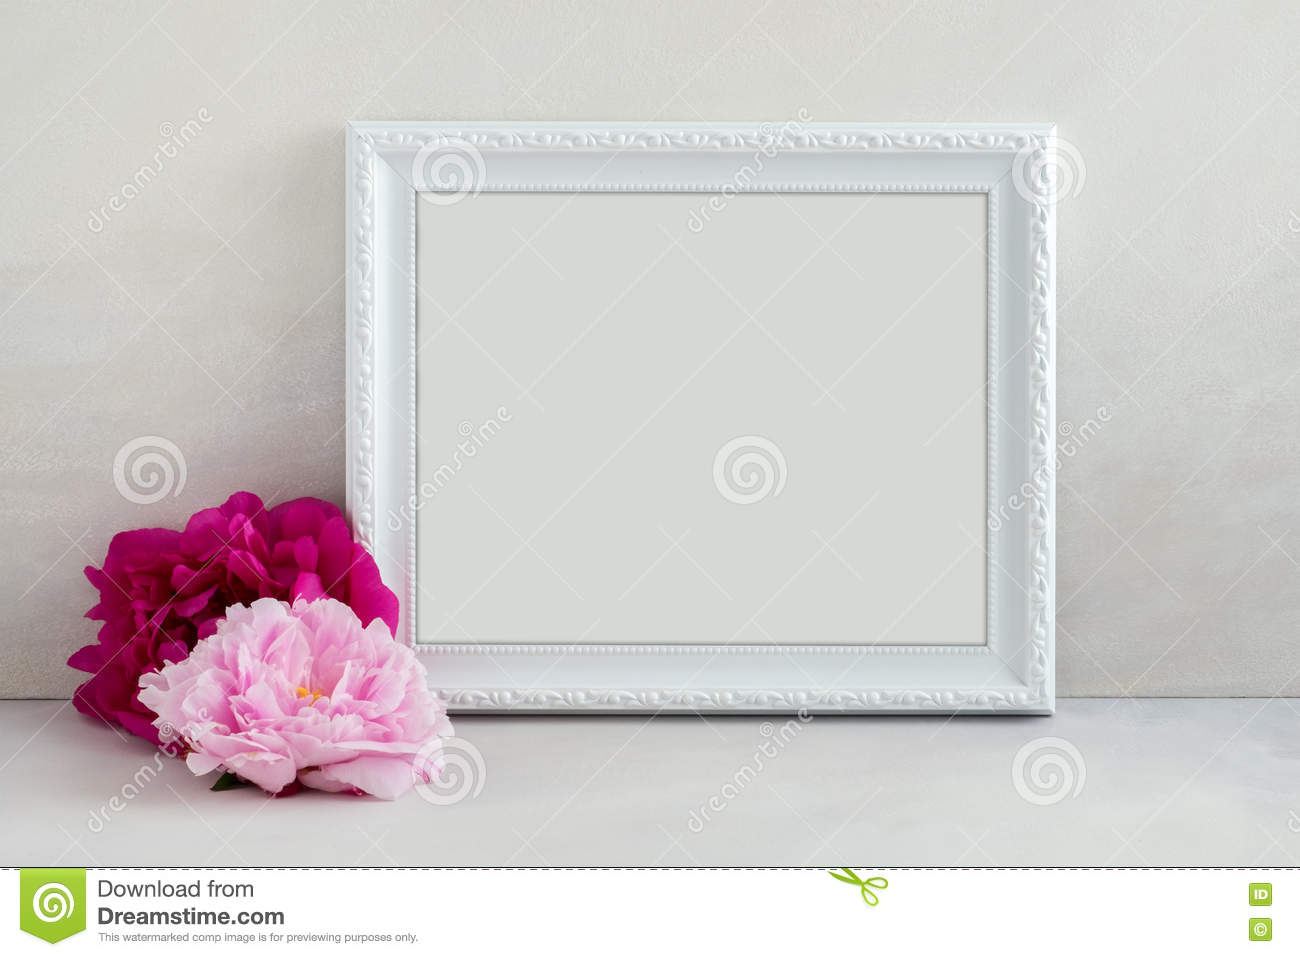 Floral Mockup Styled Stock Photography With White Frame Stock Photo ...